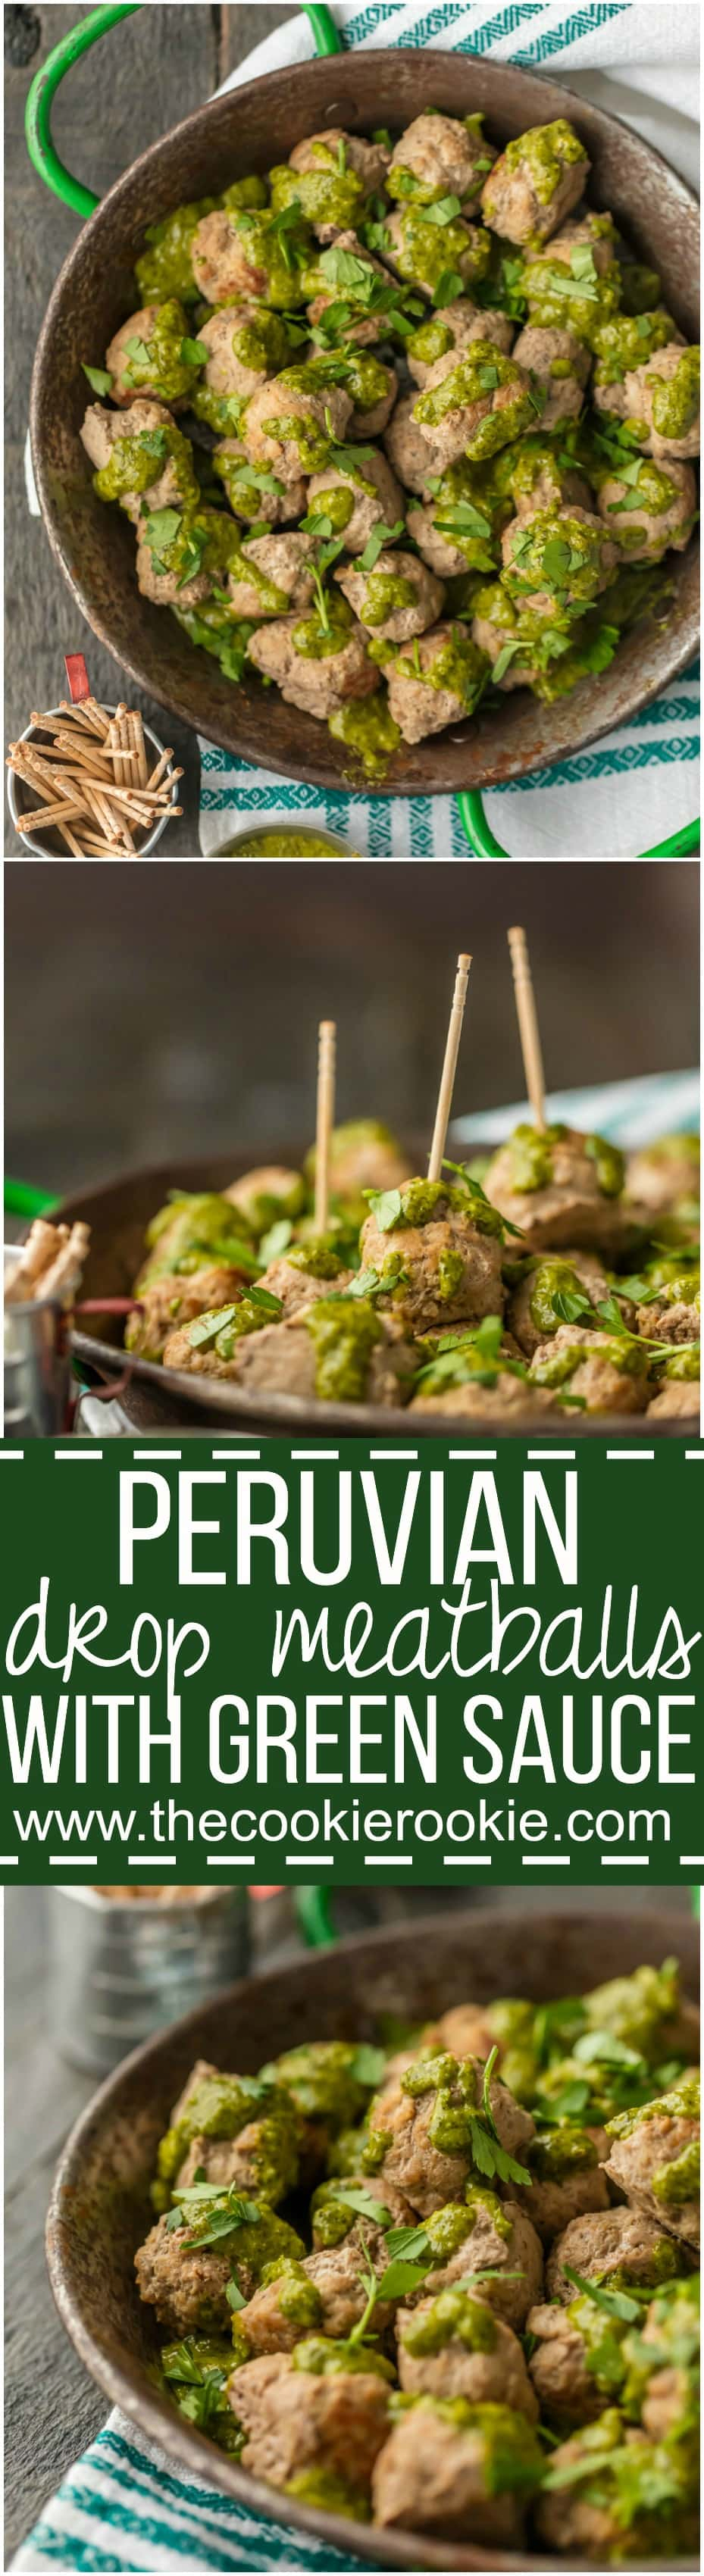 These PERUVIAN DROP MEATBALLS WITH GREEN SAUCE are the perfect holiday or Super Bowl appetizer! The green sauce, made with a parsley base, is just the right amount of spice. The meatballs are just the right amount of easy. Enjoy!